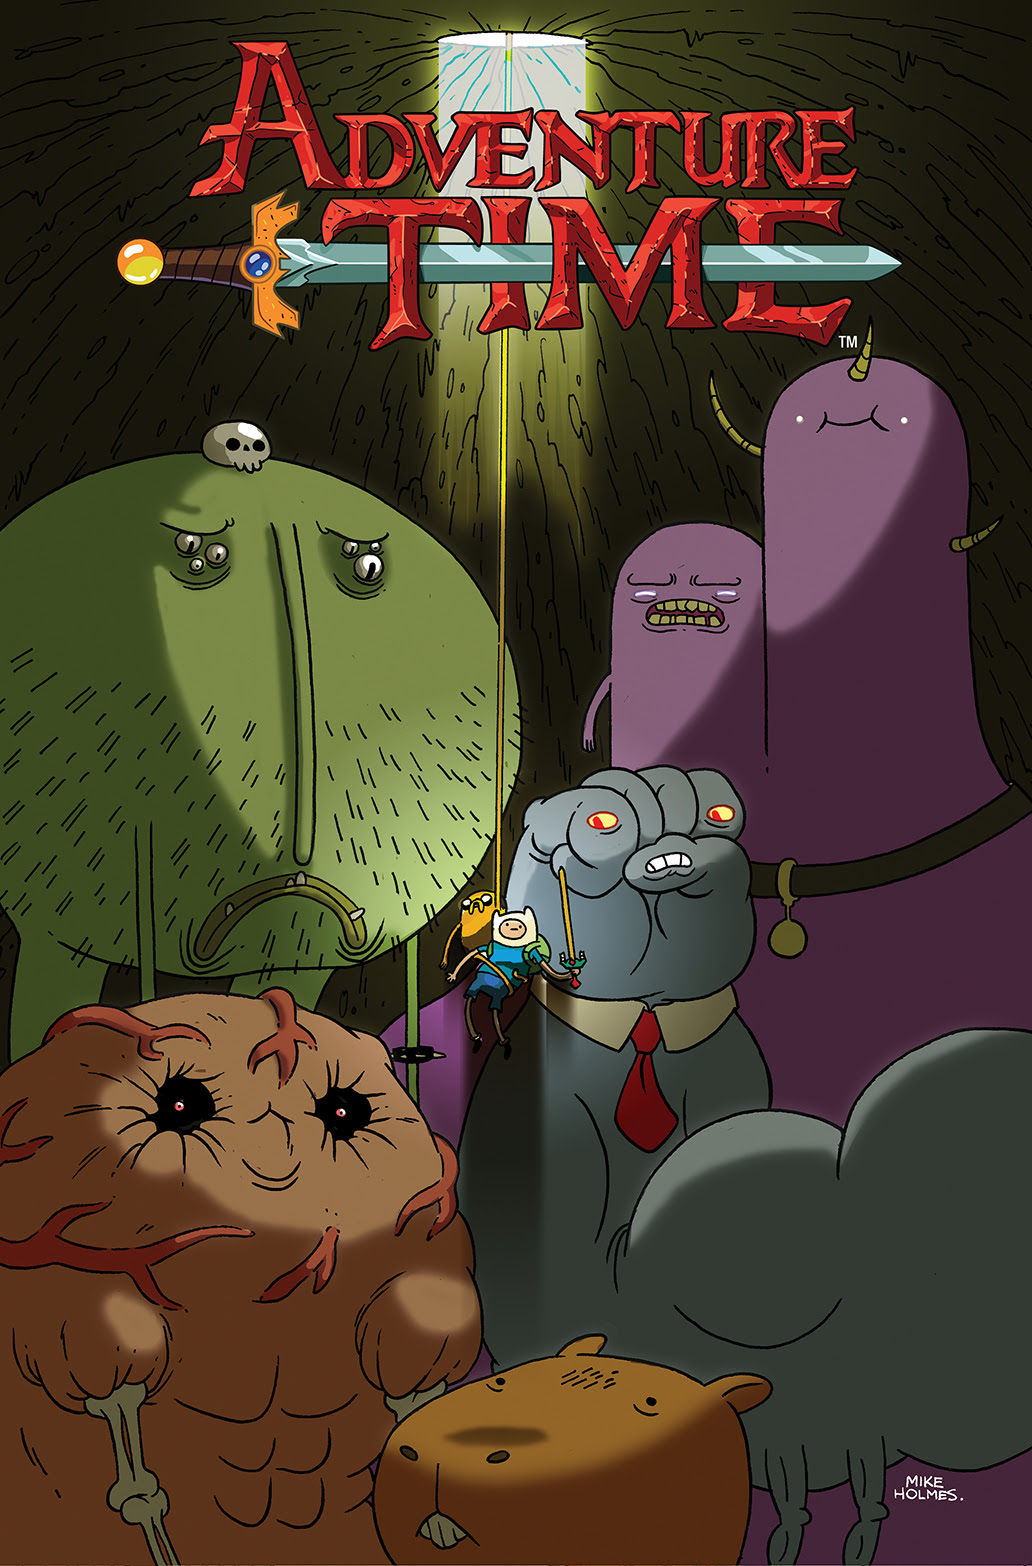 ADVENTURE TIME #28 Cover A by Mike Holmes